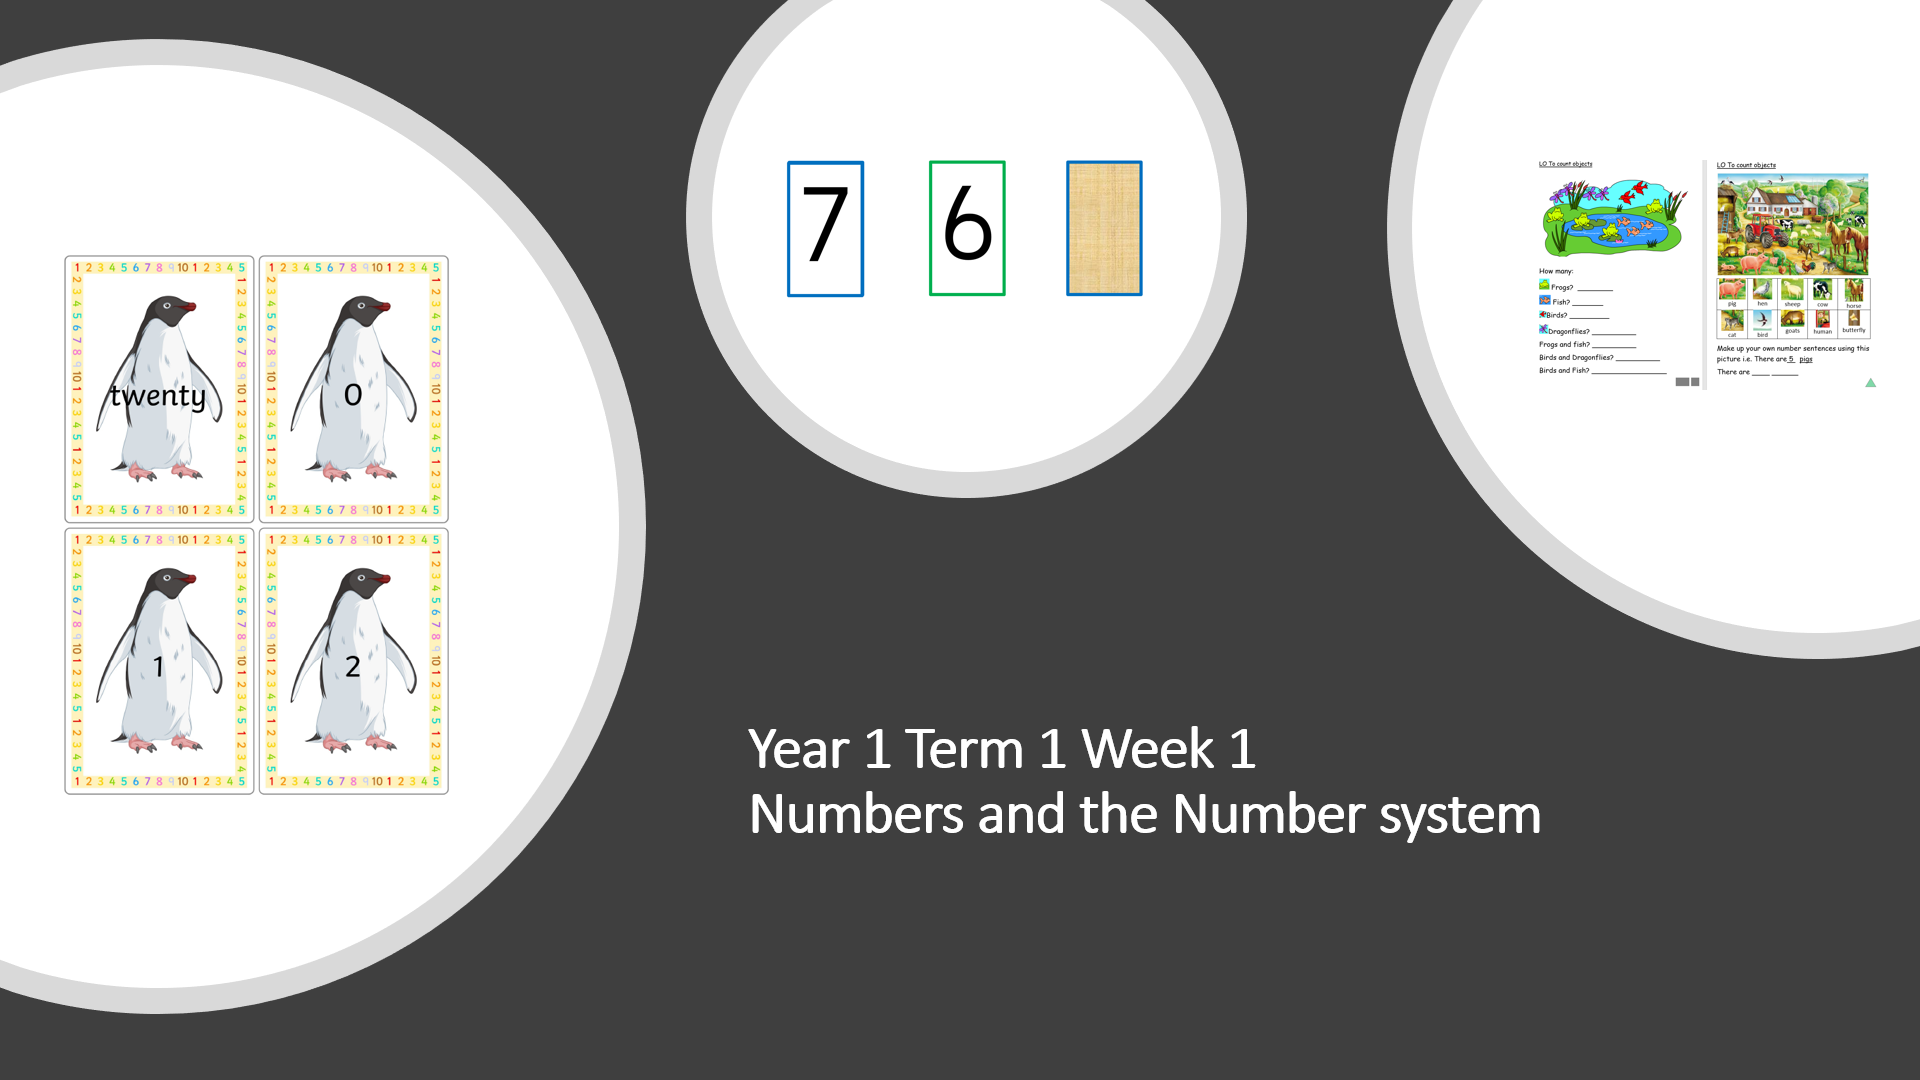 Year 1 Term 1 Week 1 Numbers and Number system - school and distance learning.